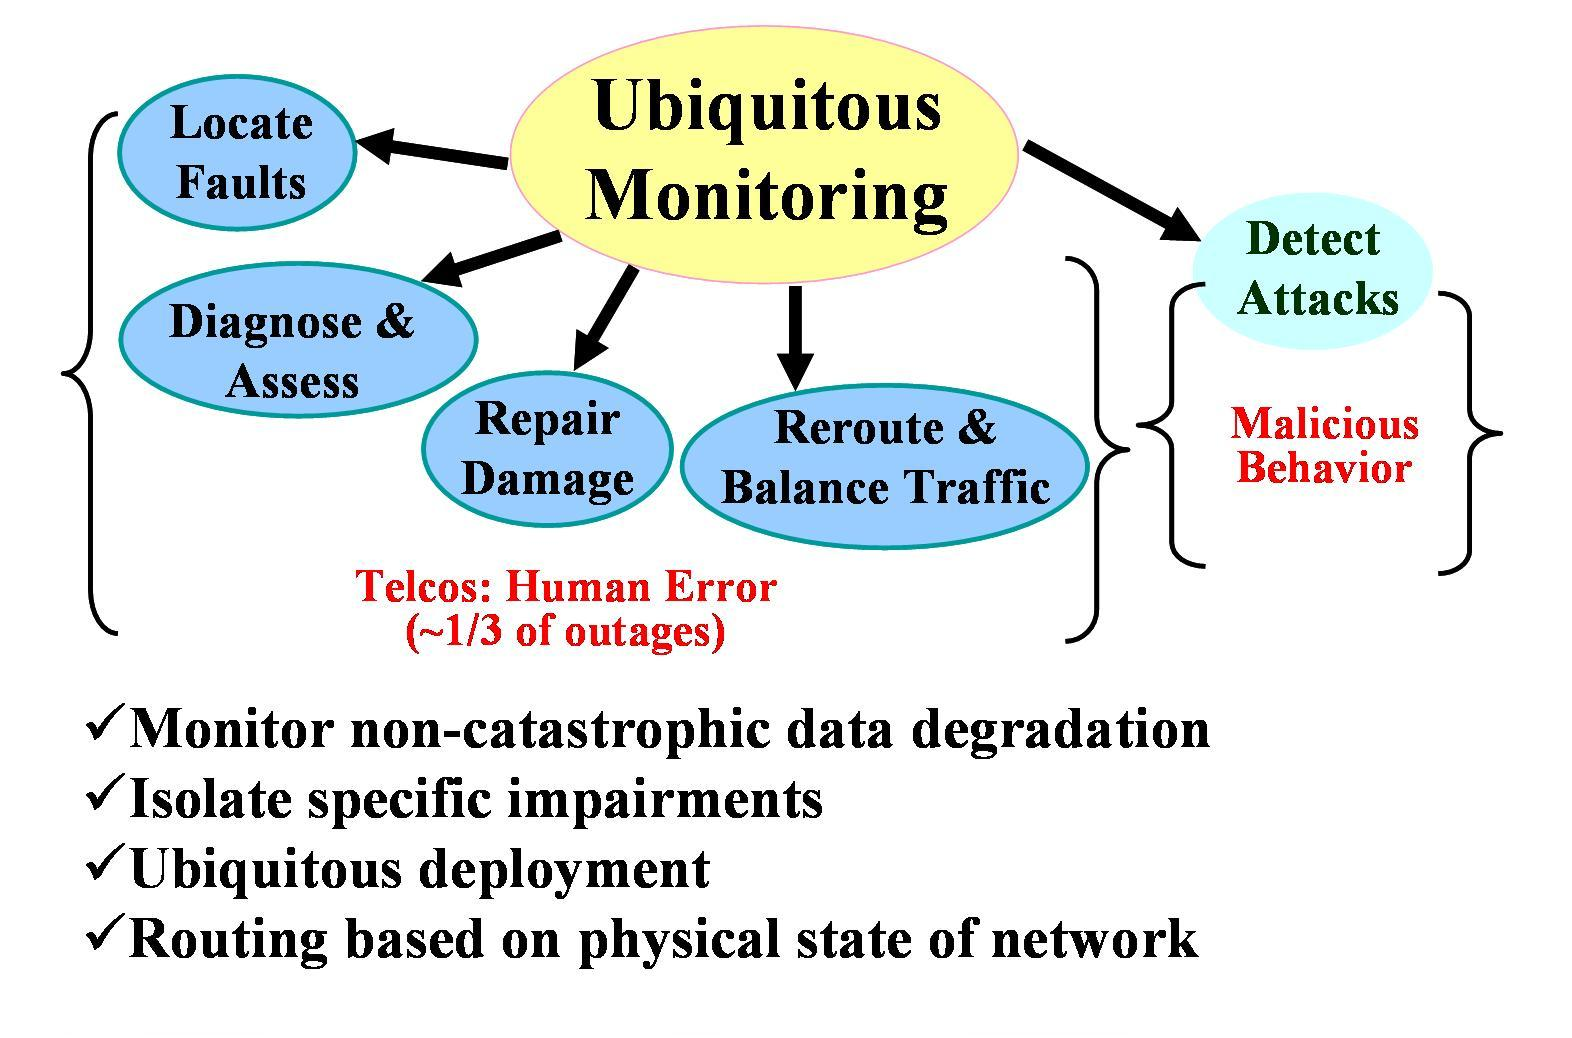 Optical Performance Monitoring Also Created A Future Diagram For How The Network Will Probably Be Therefore Monitors Should Deployed Ubiquitously Around On Each Node